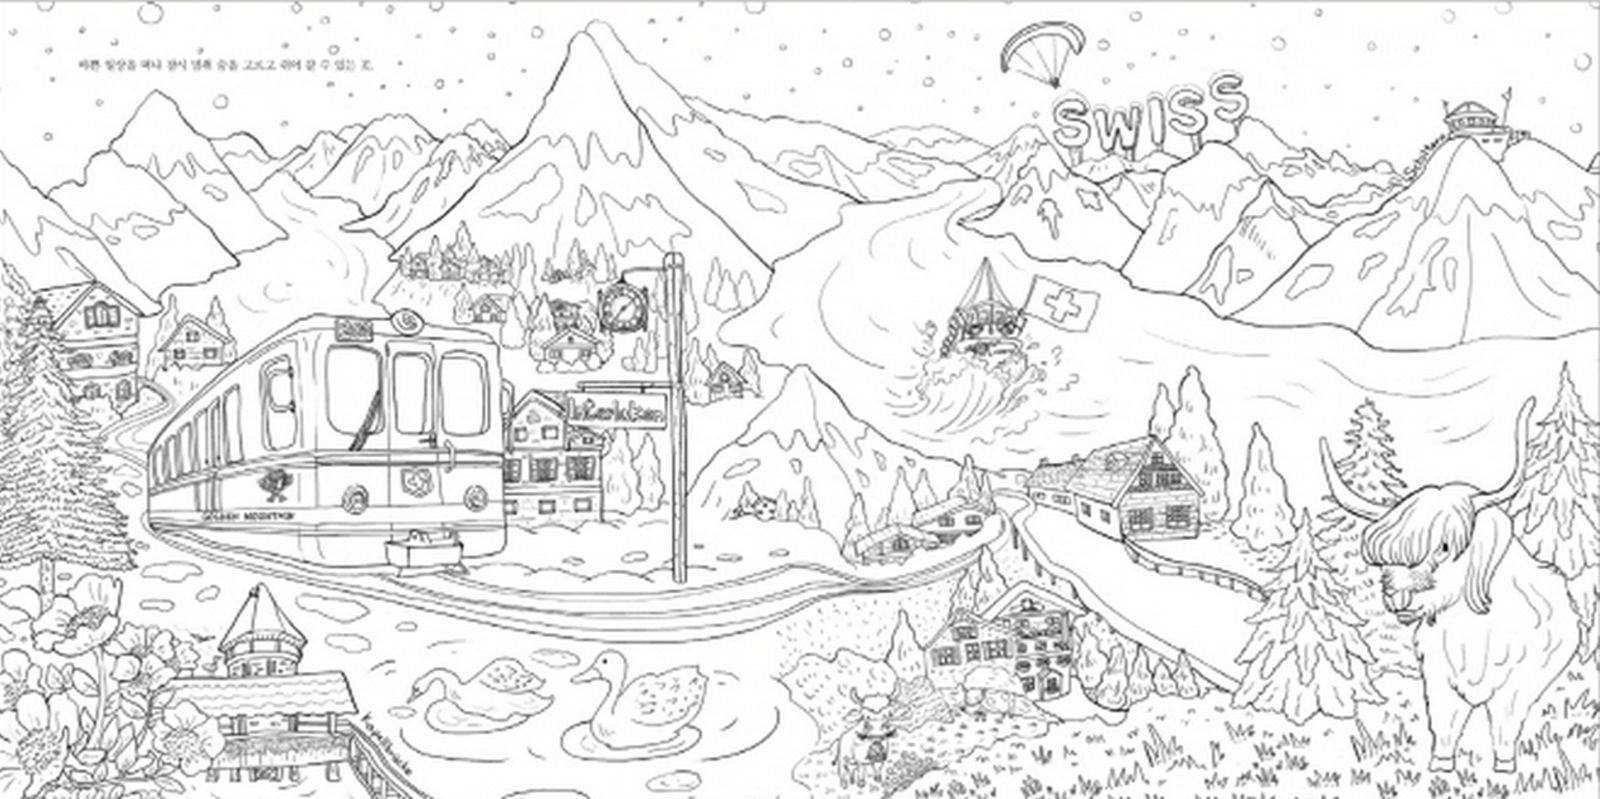 Around The World Coloring Book Dreaming Traveler Adult Anti Stress Art Therapy